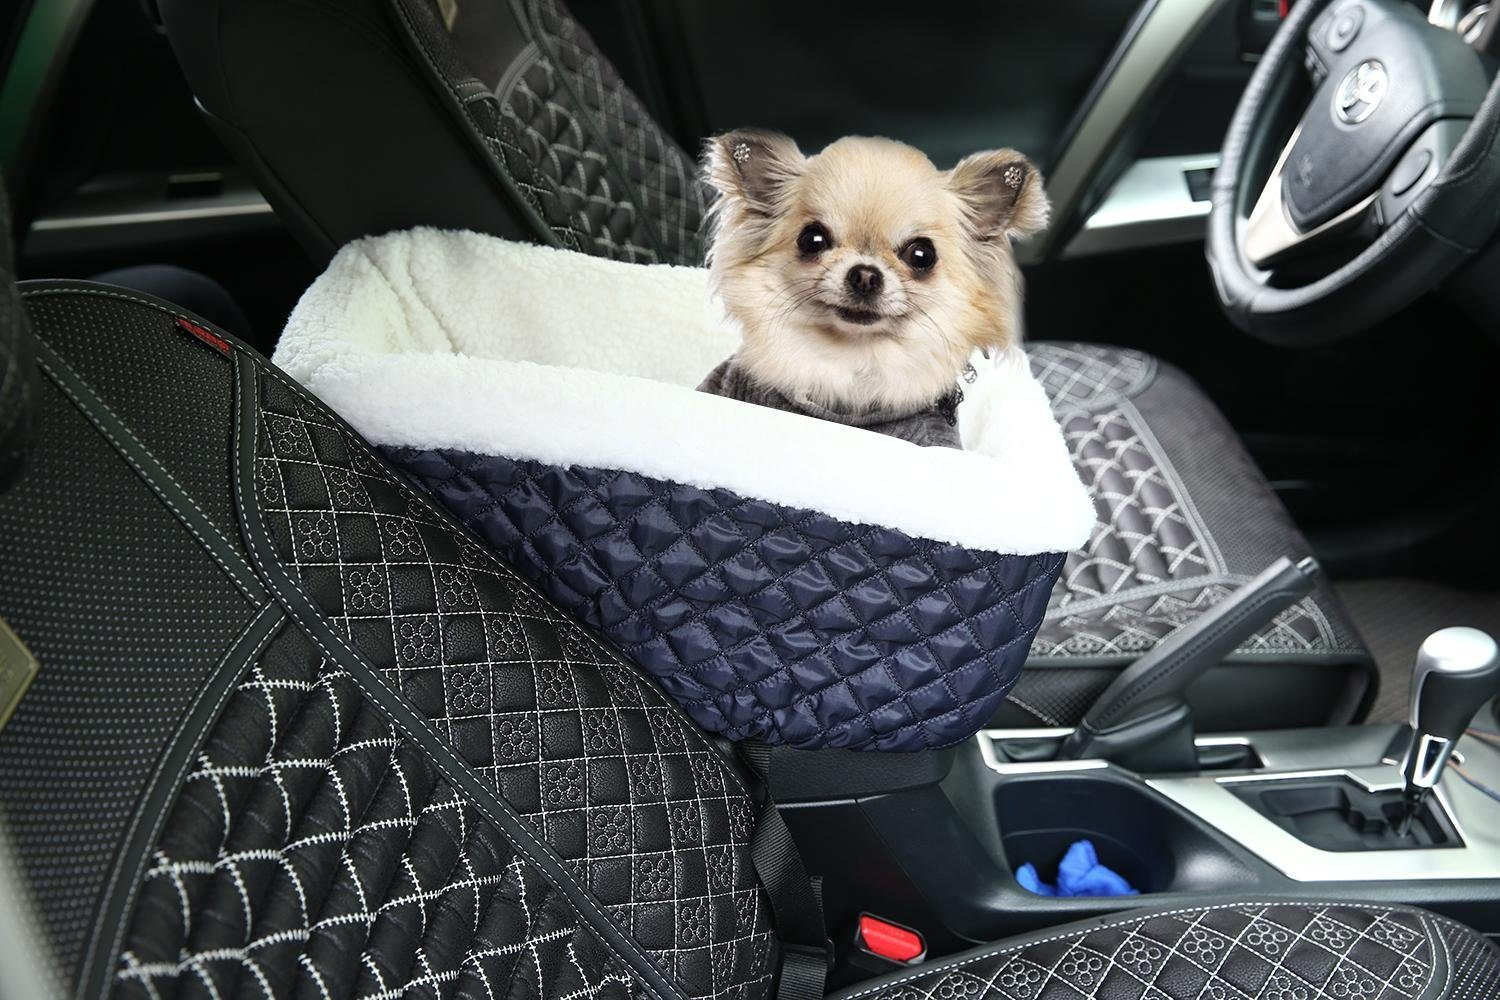 kobwa tm console dog car seat for small pets with safety belt. Black Bedroom Furniture Sets. Home Design Ideas